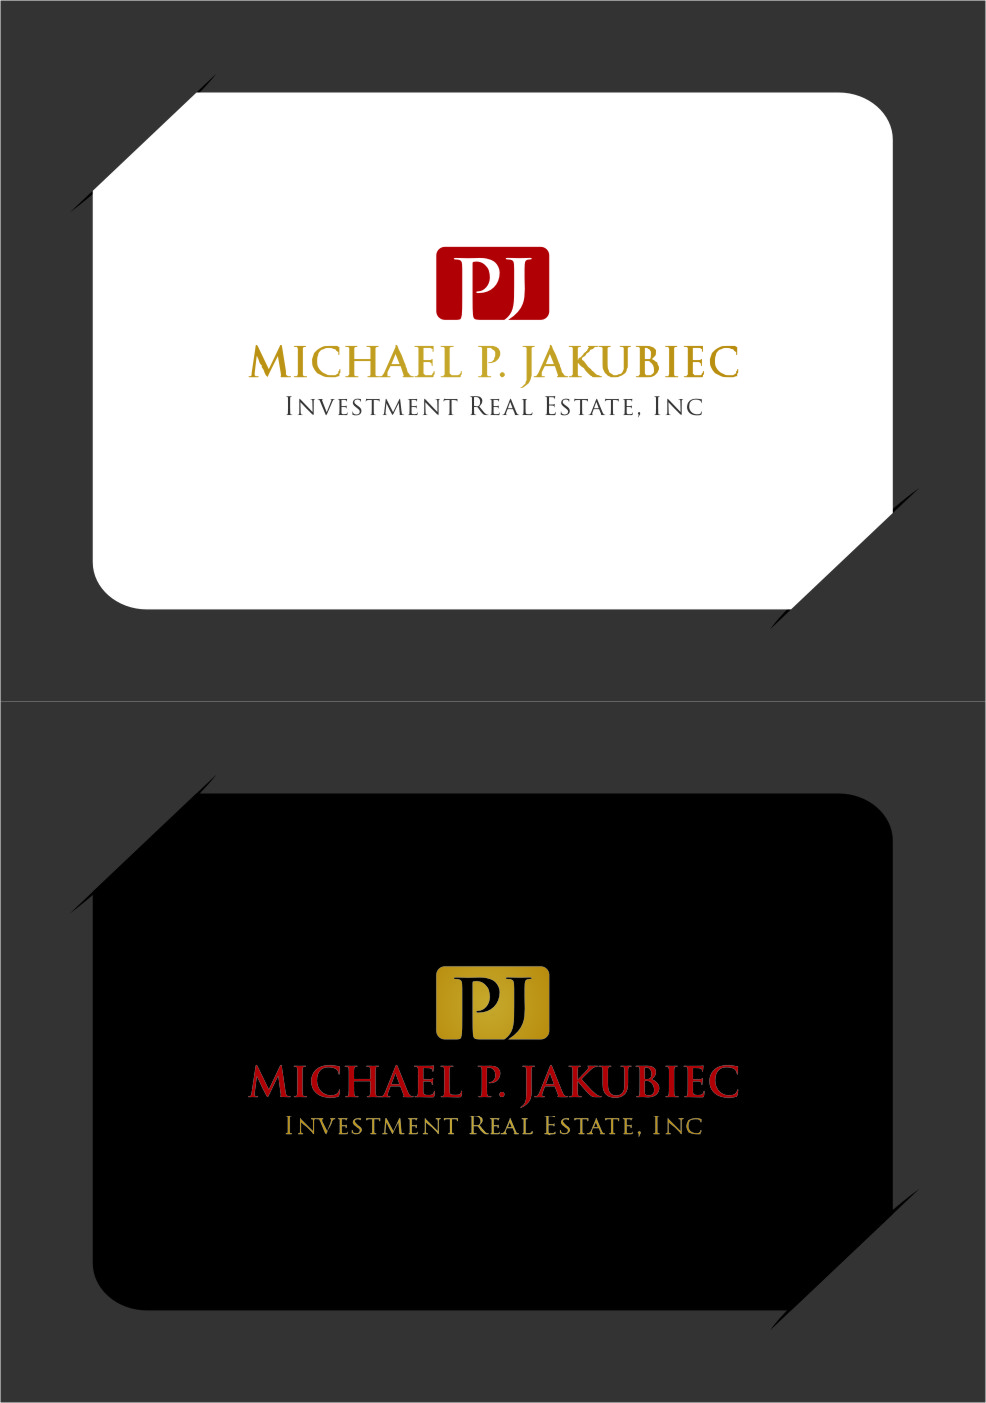 Logo Design by Ngepet_art - Entry No. 122 in the Logo Design Contest New Logo Design for Michael P. Jakubiec Investment Real Estate, Inc..